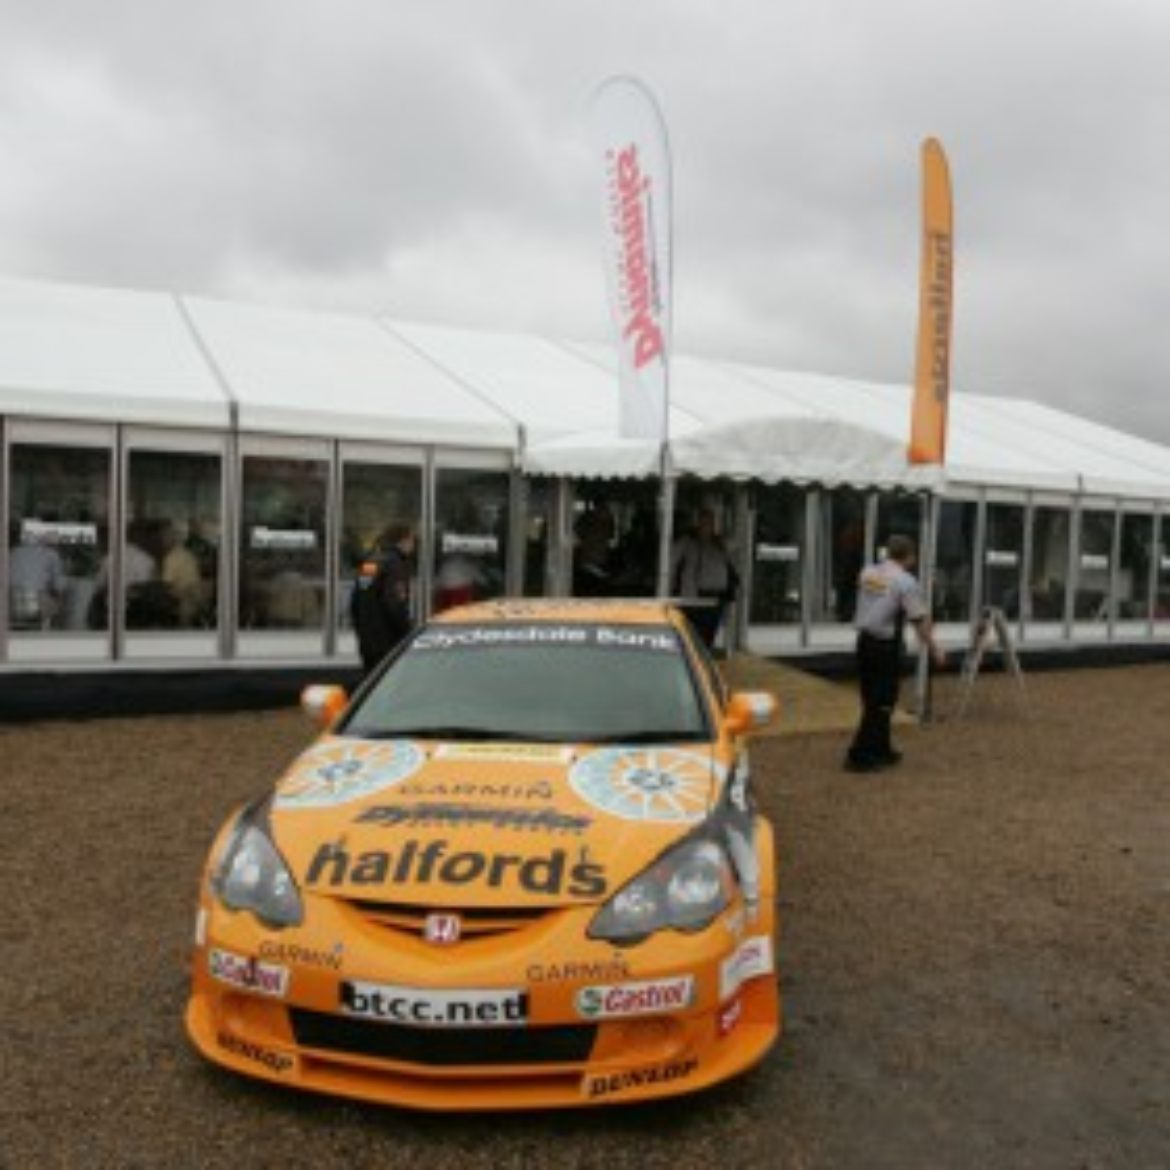 Halfords - BTCC Event at Brands Hatch